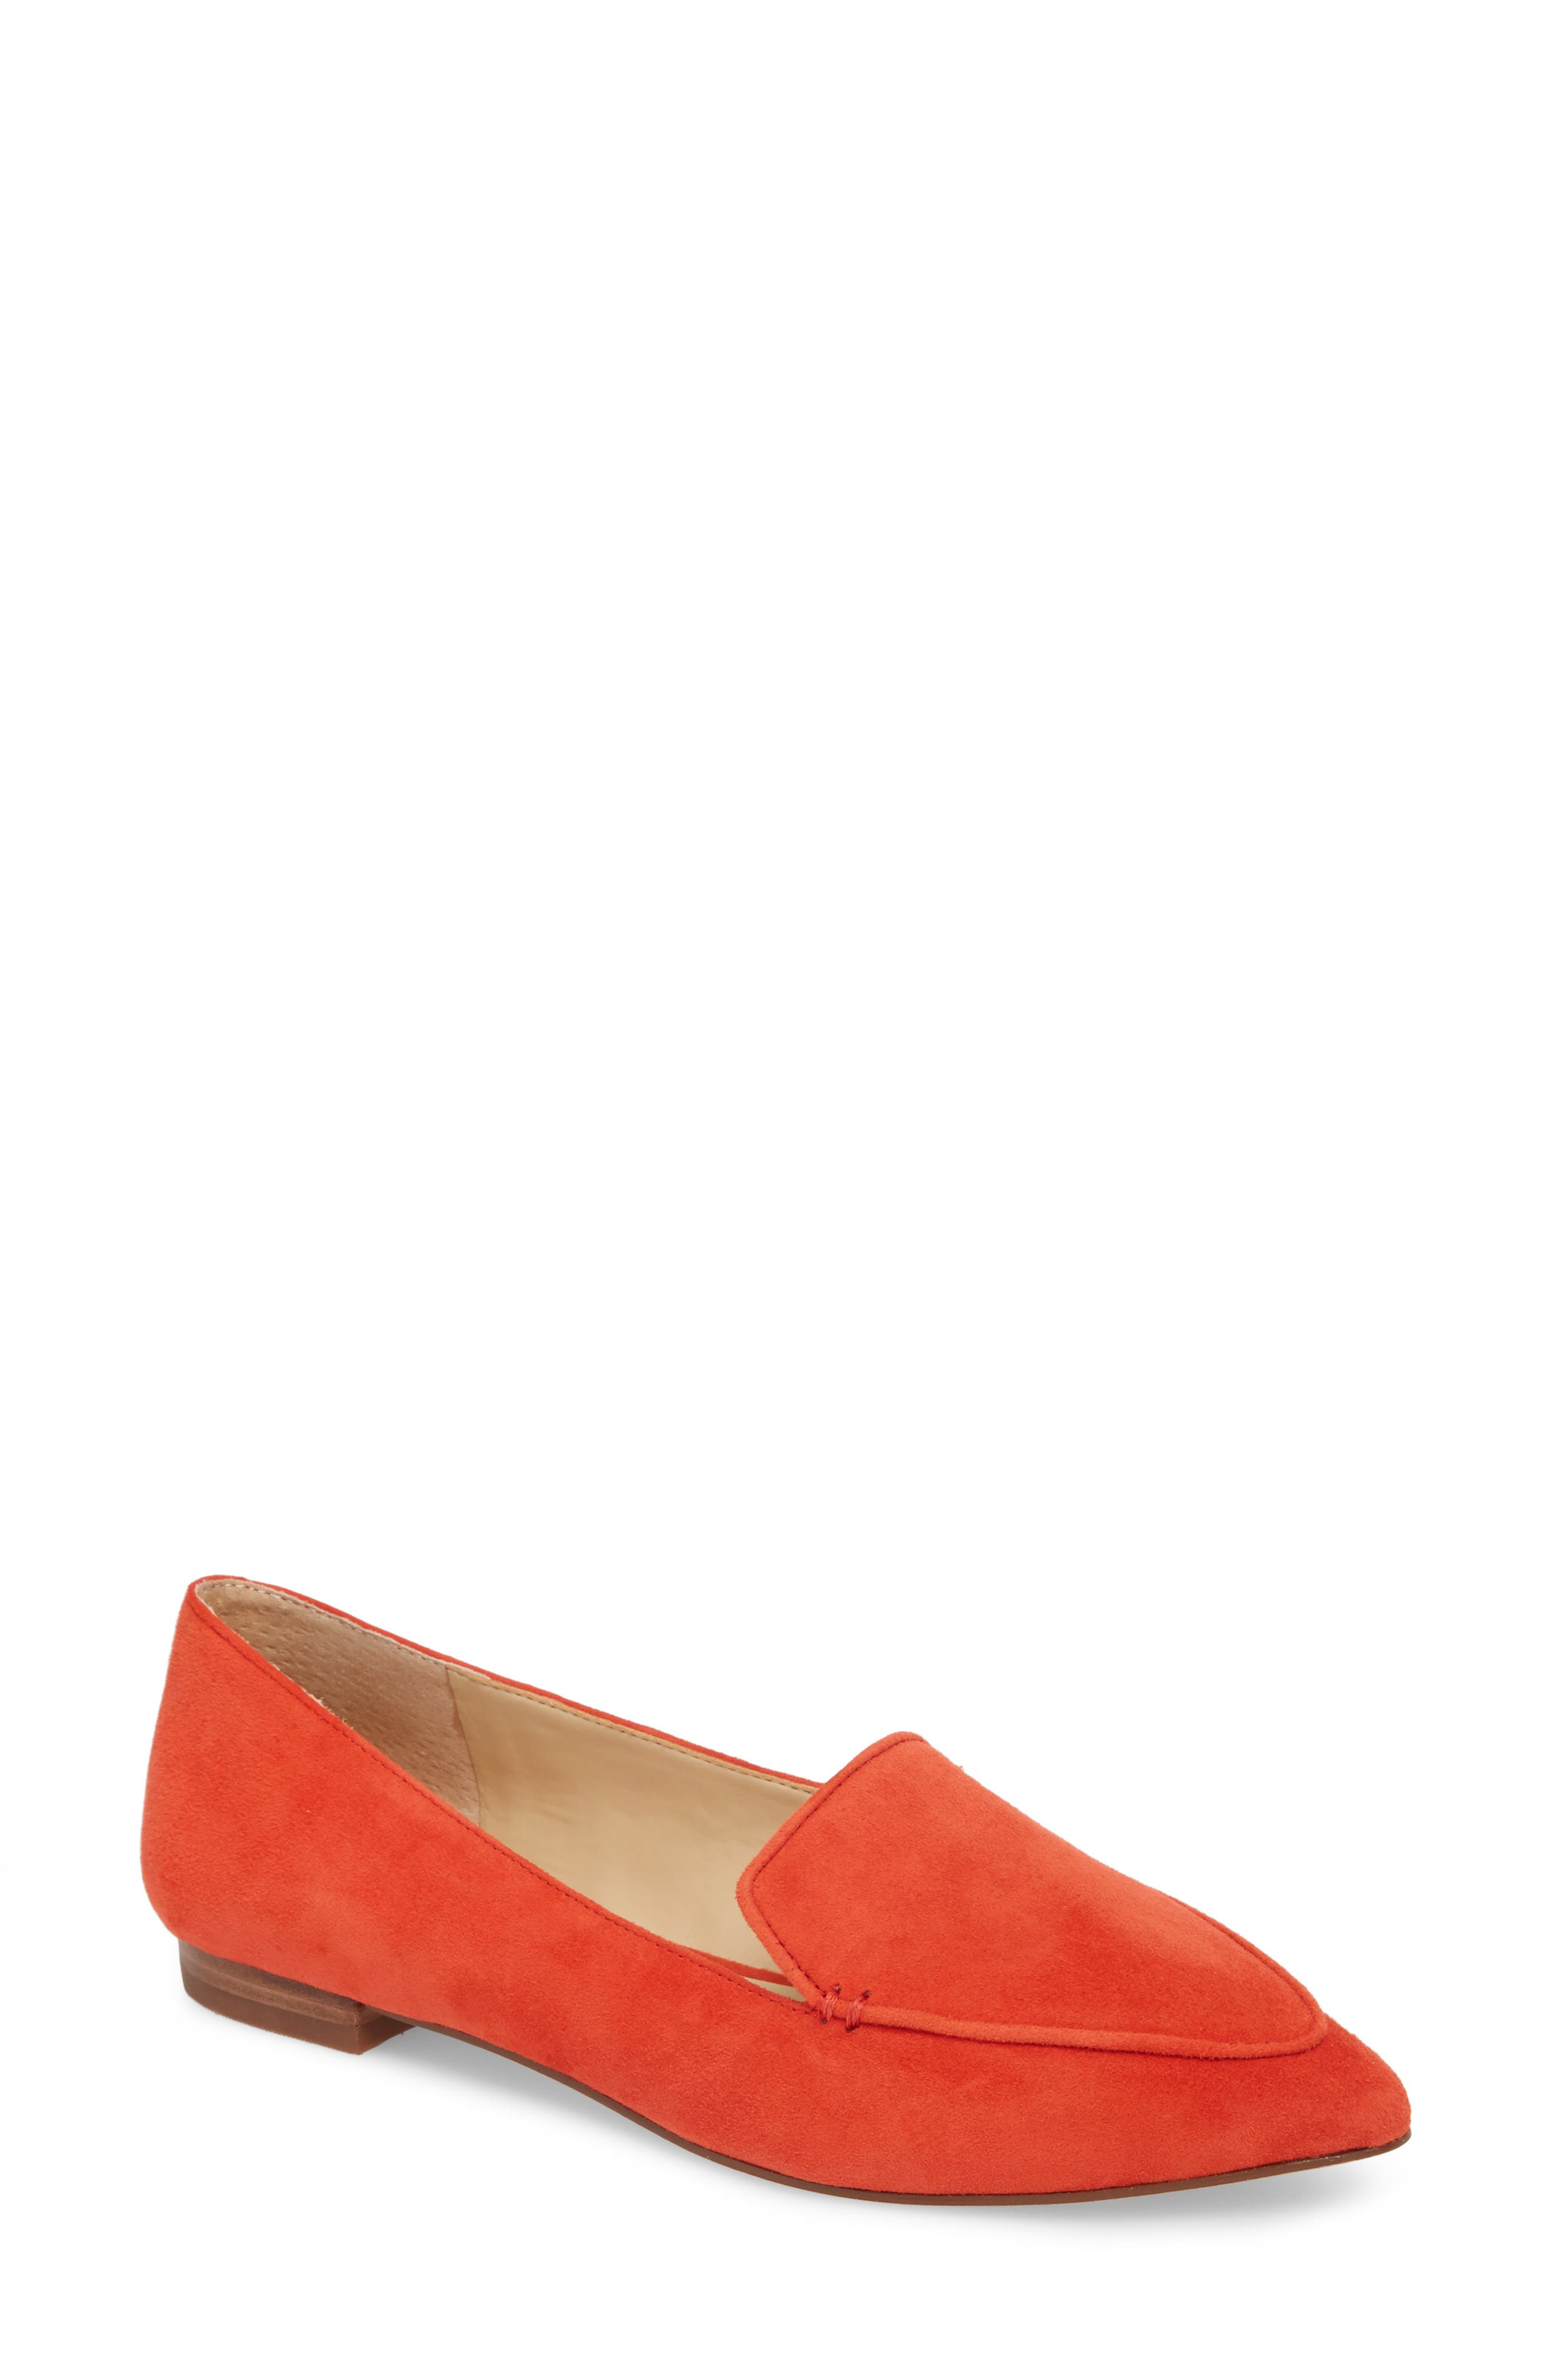 'Cammila' Pointy Toe Loafer,                             Main thumbnail 4, color,